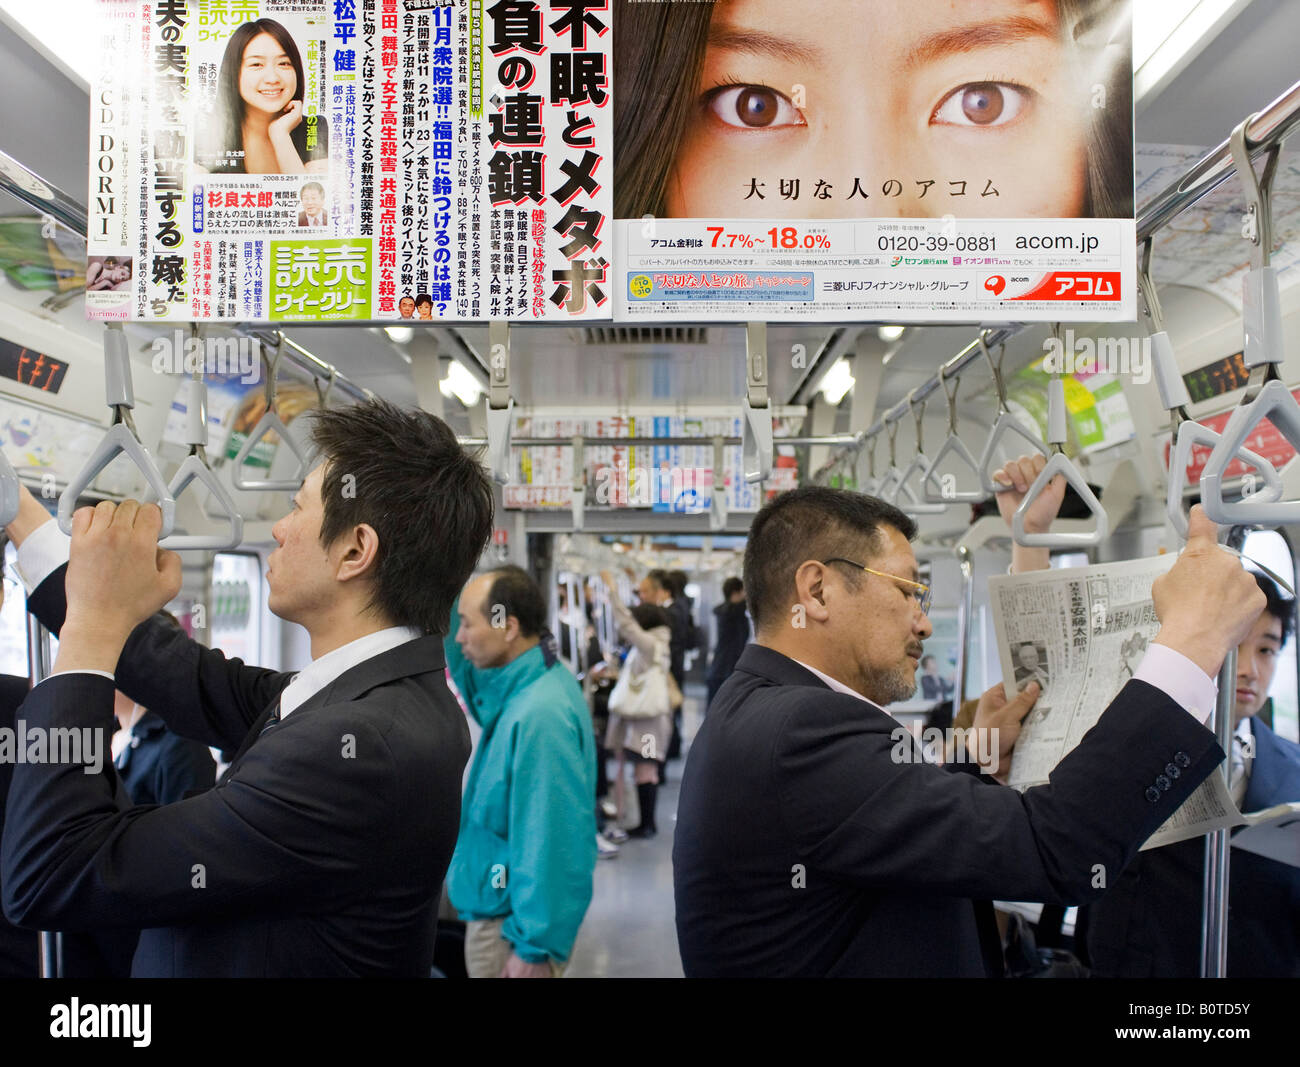 Advertising poster in carriage on railway train in Tokyo Japan - Stock Image